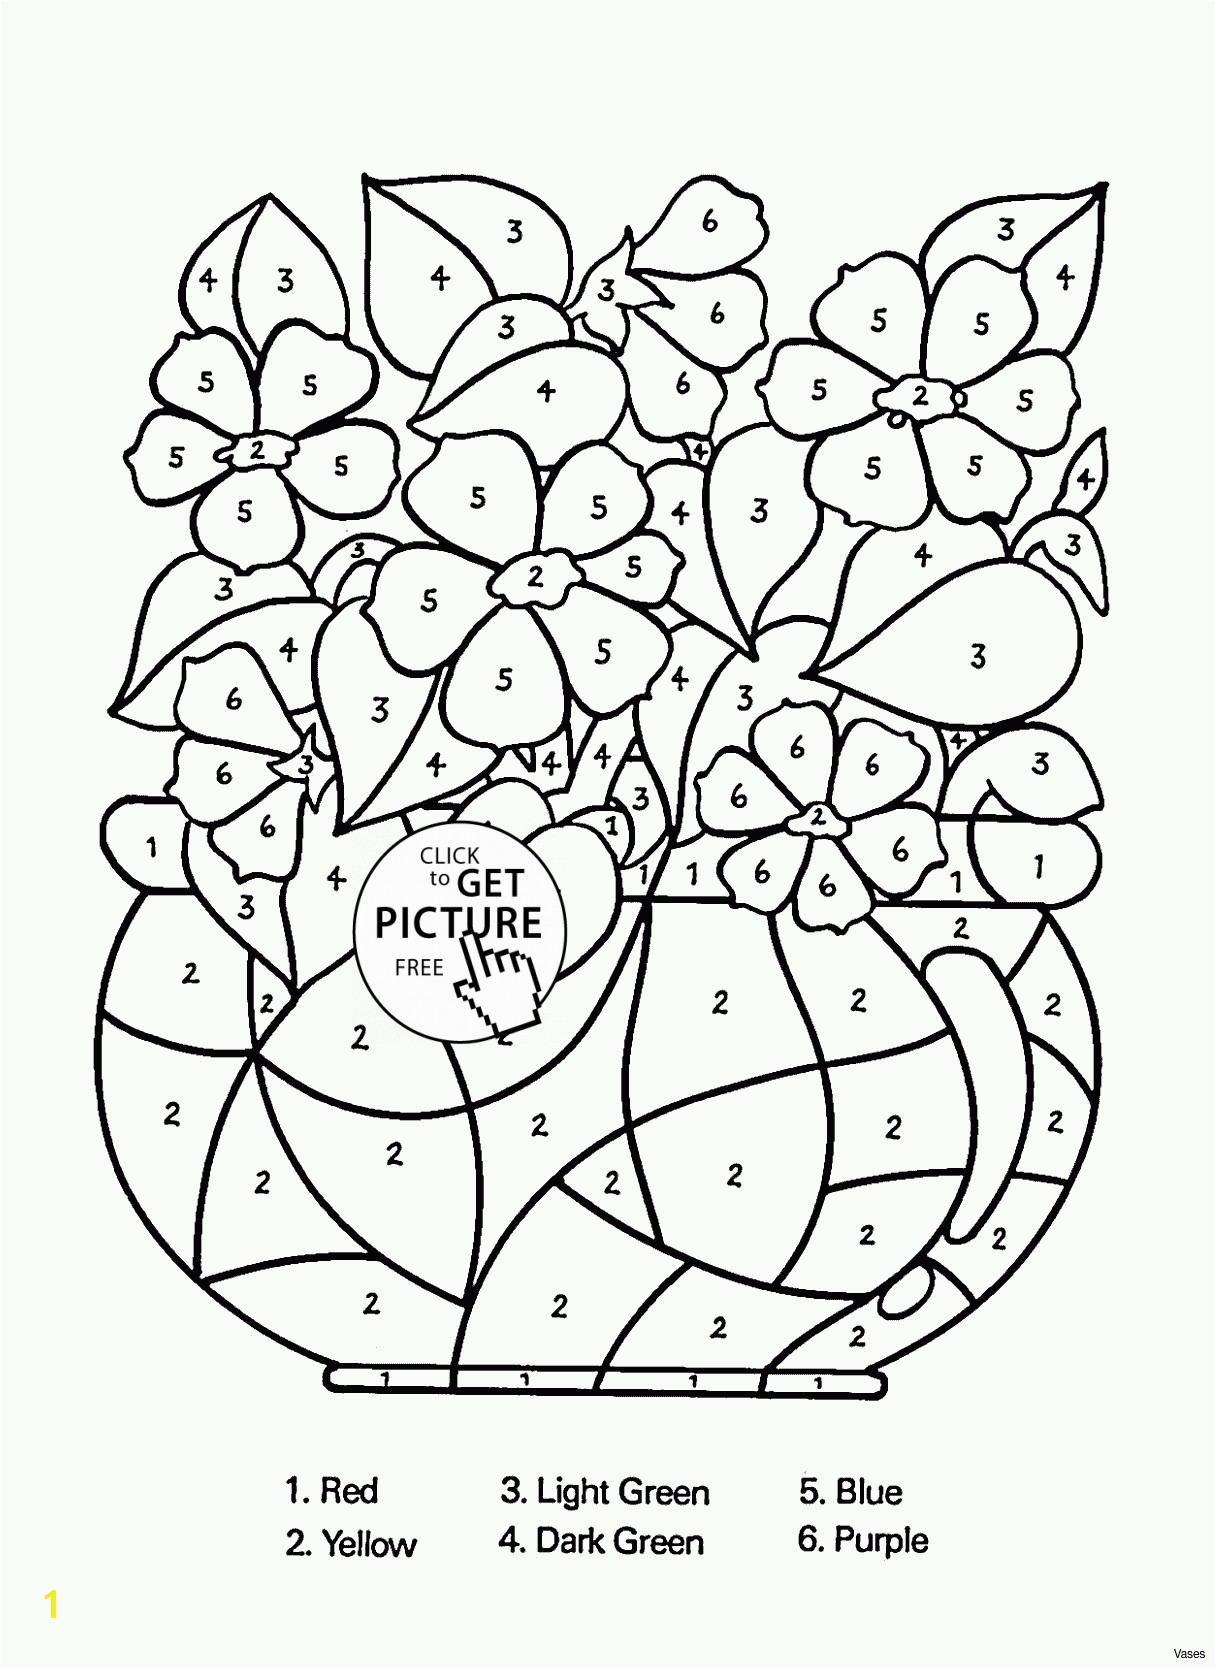 Free Printable Hippo Coloring Pages Lovely 4 H Coloring Pages Free Printable Hippo Coloring Pages